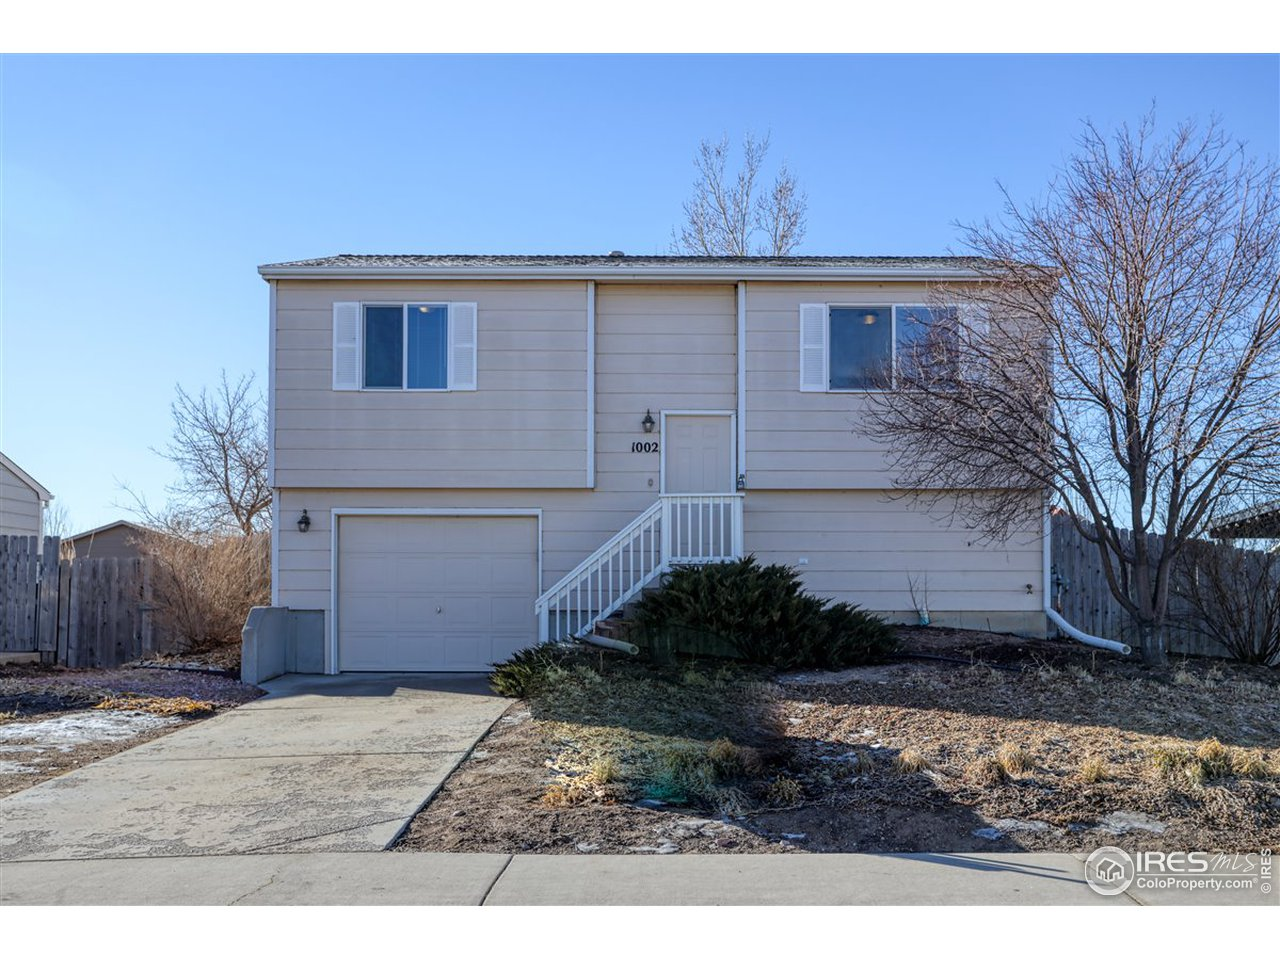 1002 E 24th St Rd, Greeley CO 80631